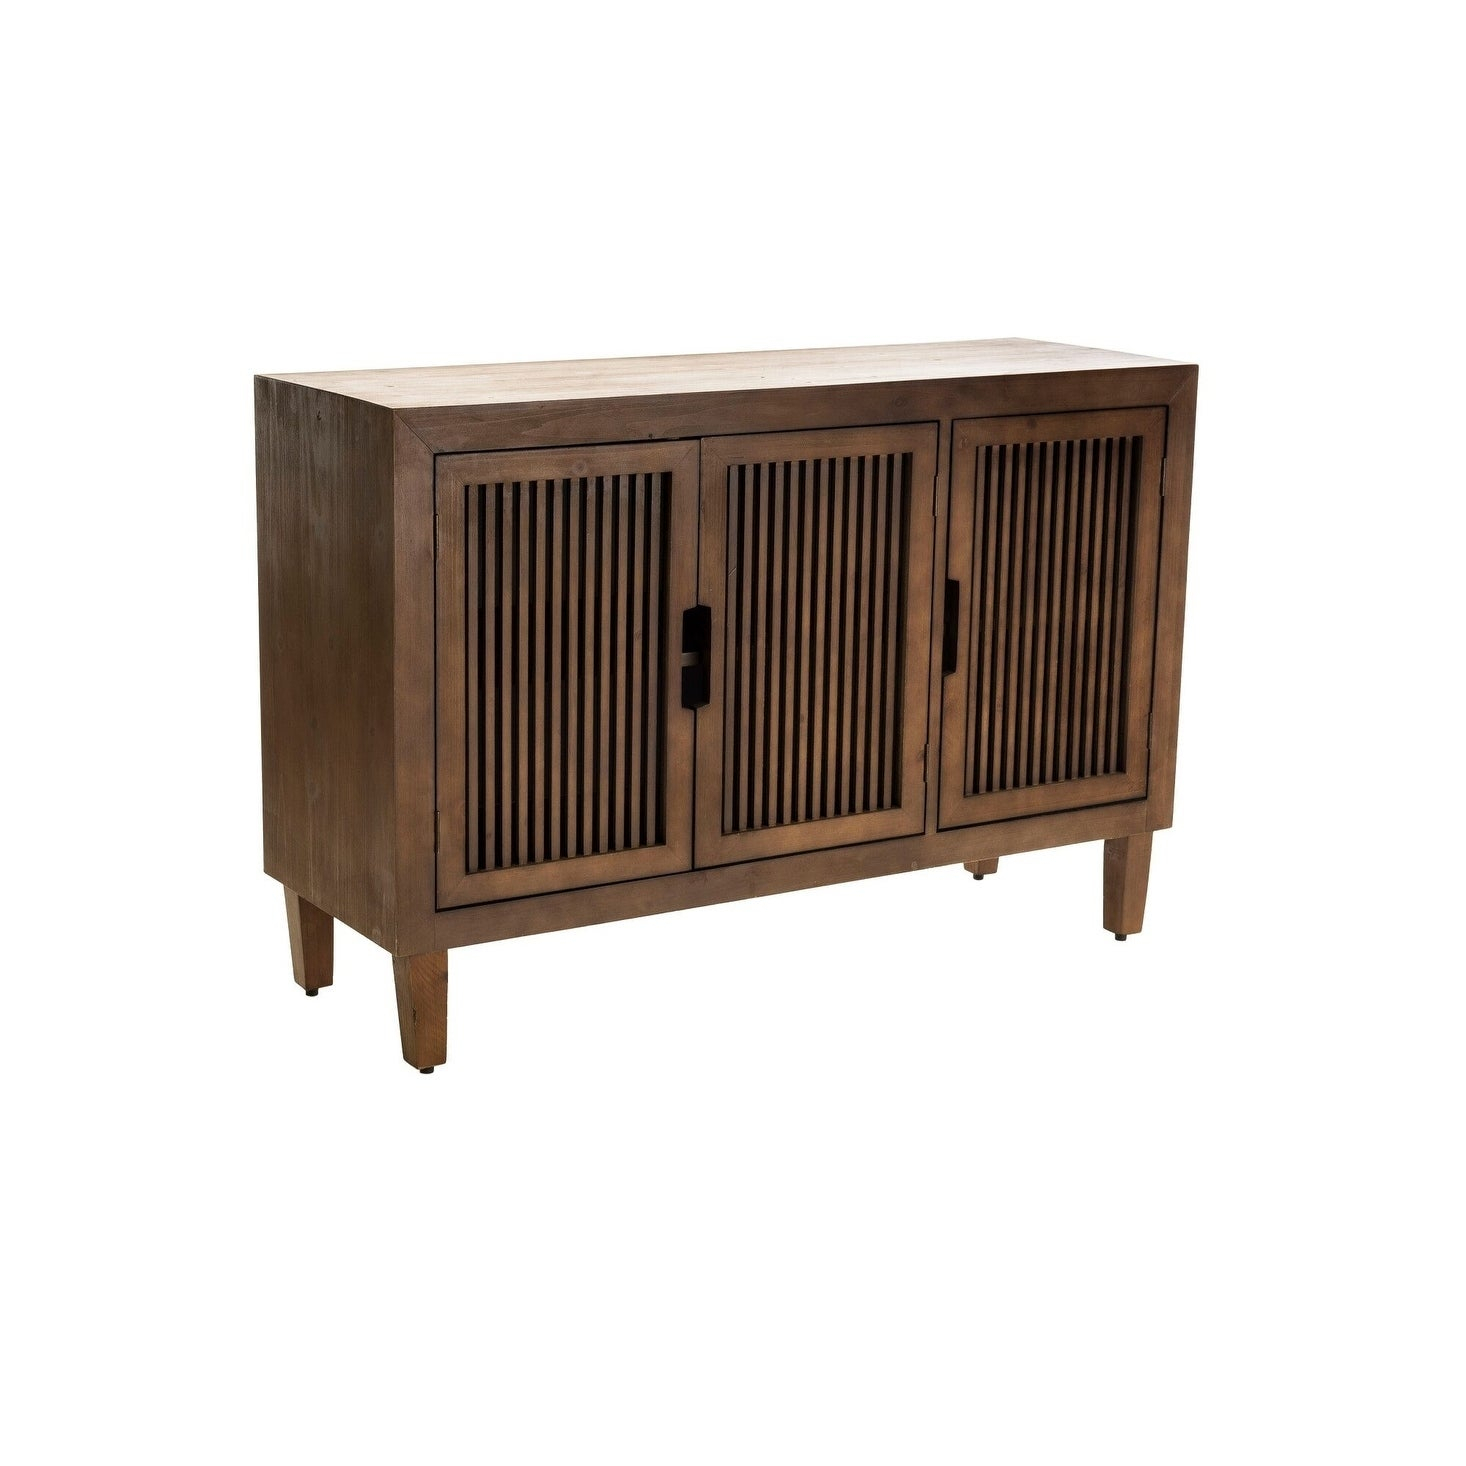 Finch Sawyer Cabinet, Brown Pertaining To Whitten Sideboards (View 17 of 30)